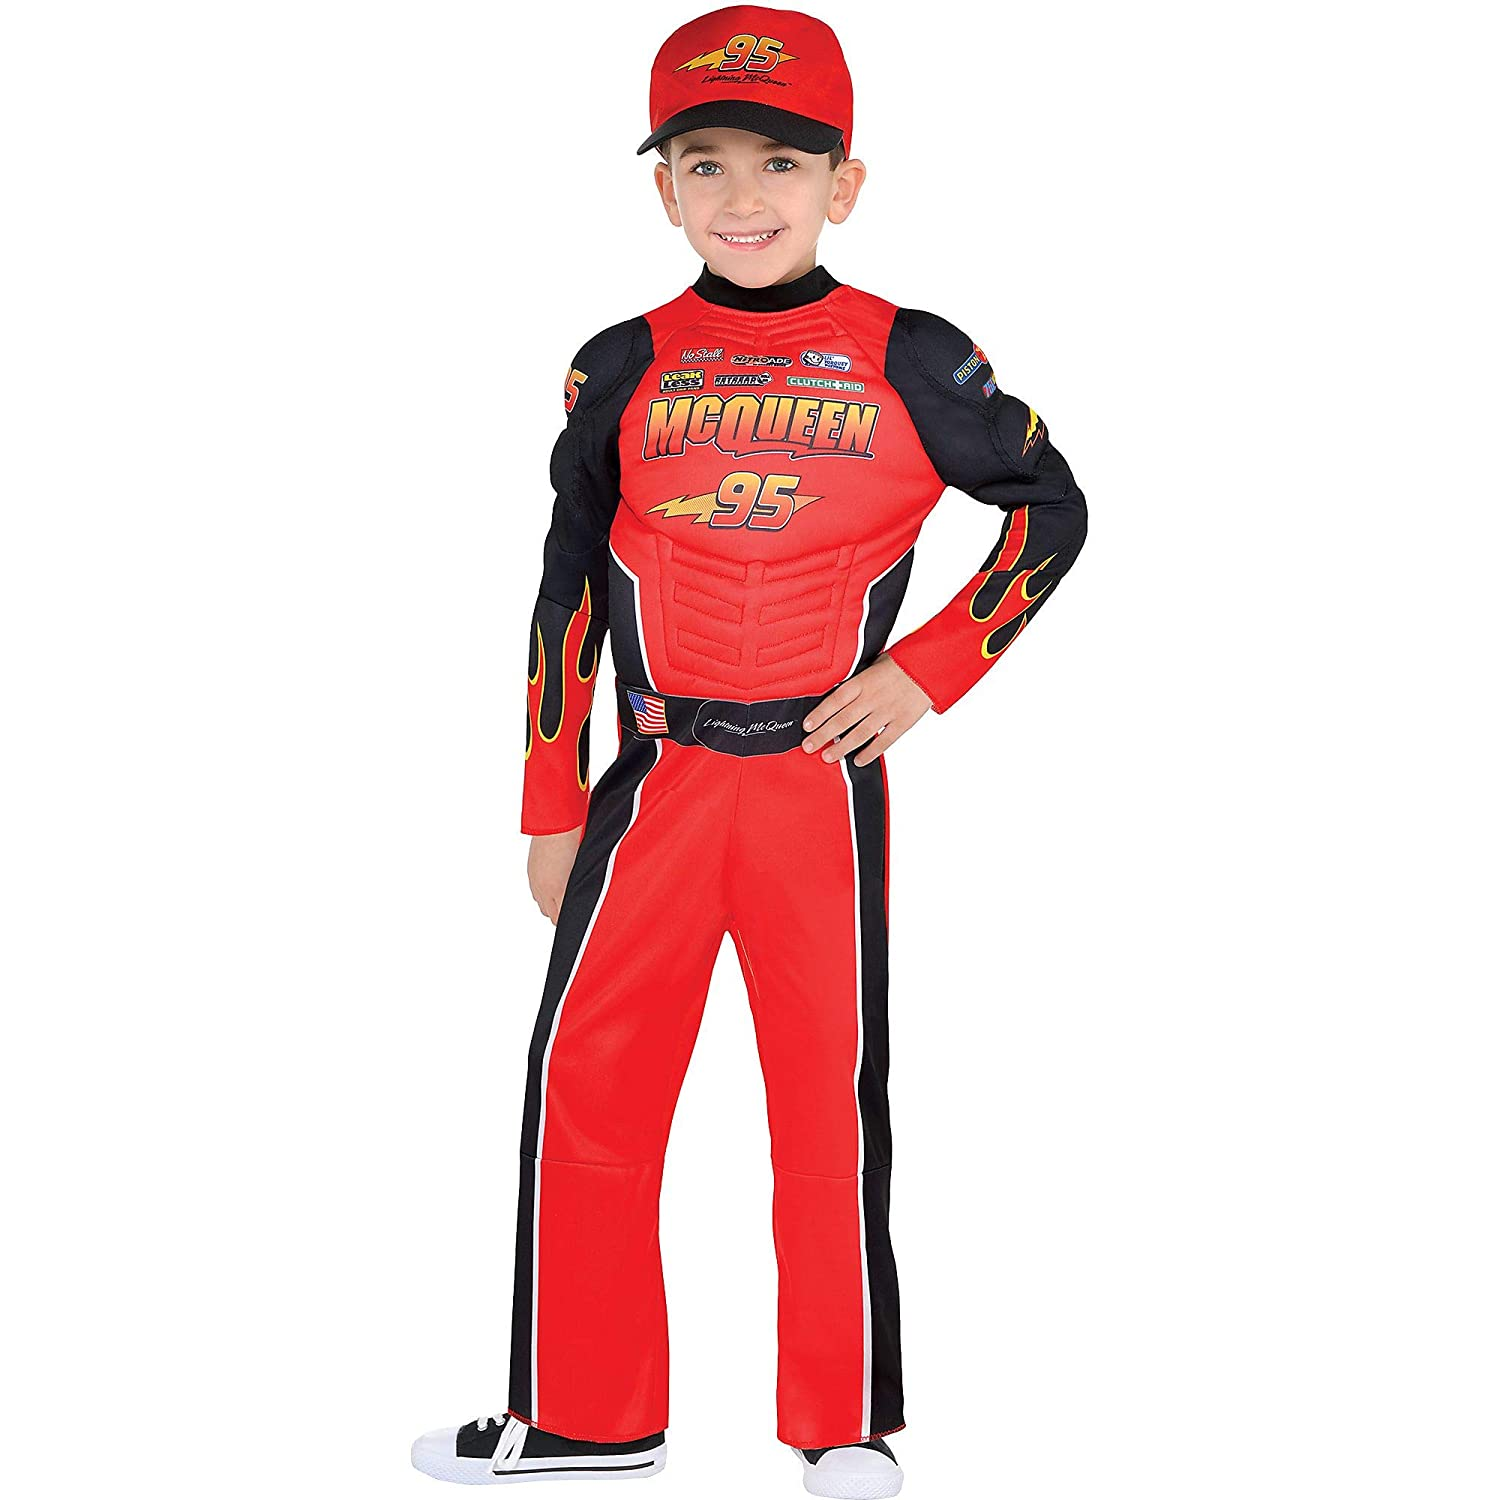 Suit Yourself Cars Lightning McQueen Muscle Costume for Boys  Includes a Racing Jumpsuit and a Baseball Cap